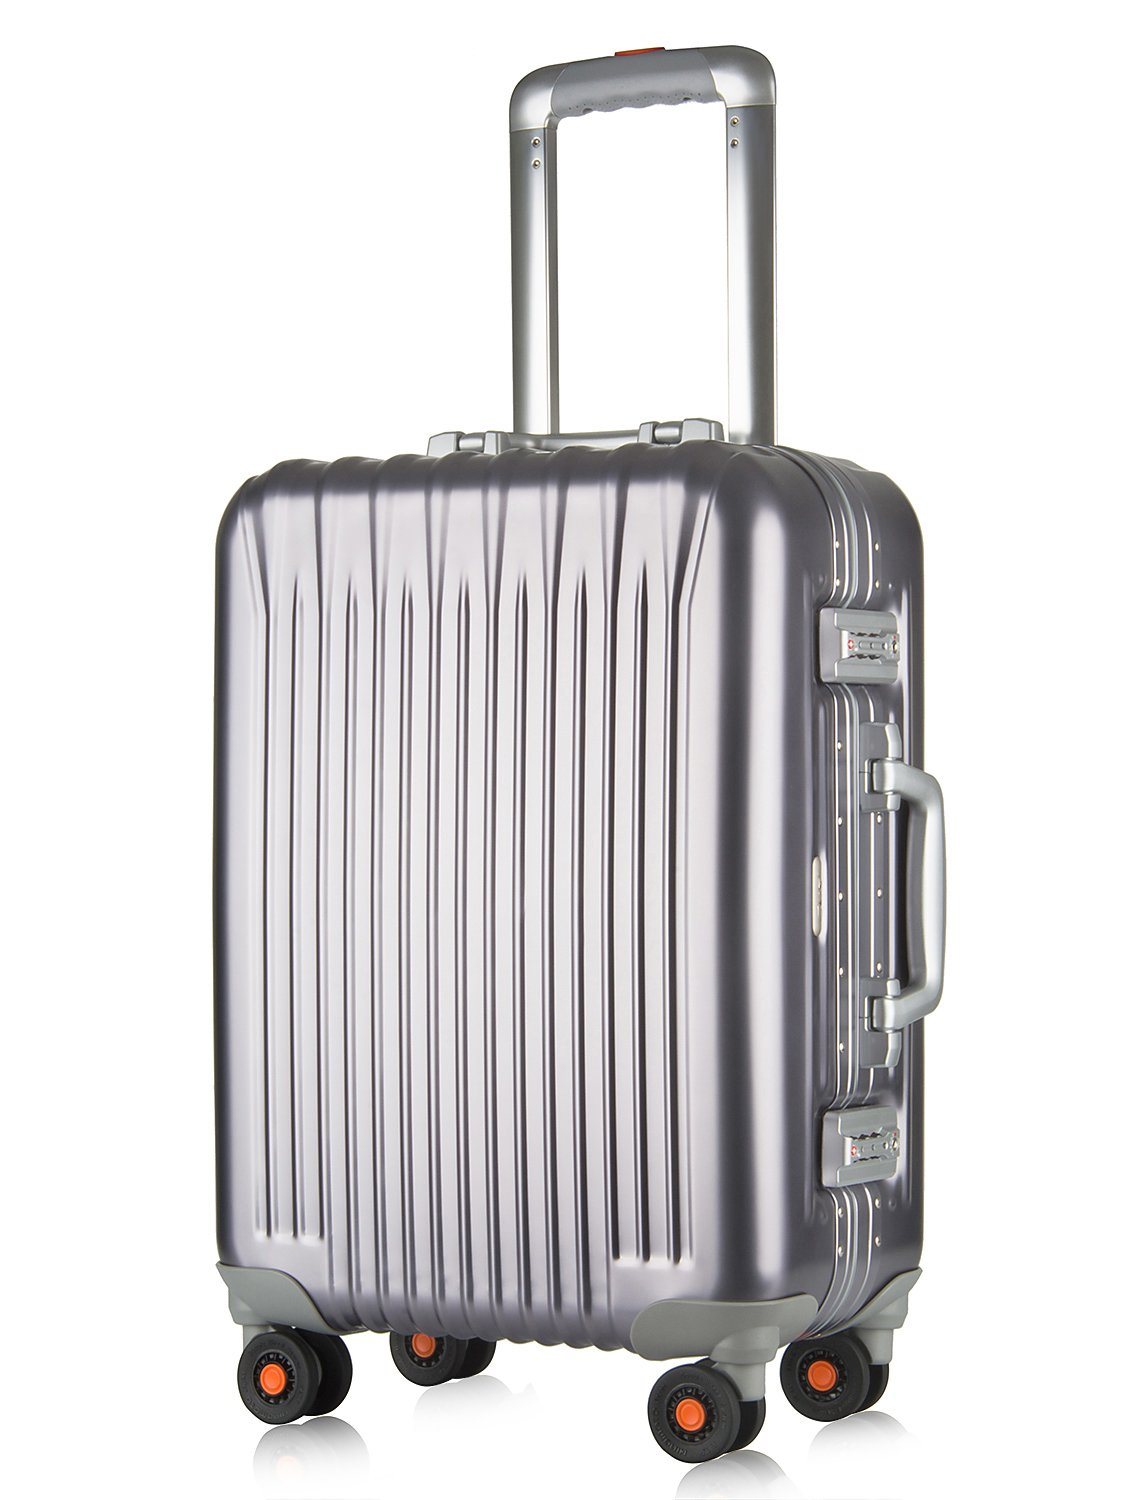 All Aluminum Luggage, HardShell Carry On Spinner Suitcase Grade 5 Aluminum-Magnesium Alloy TSA Approved 20'', Gunmetal by Clothink